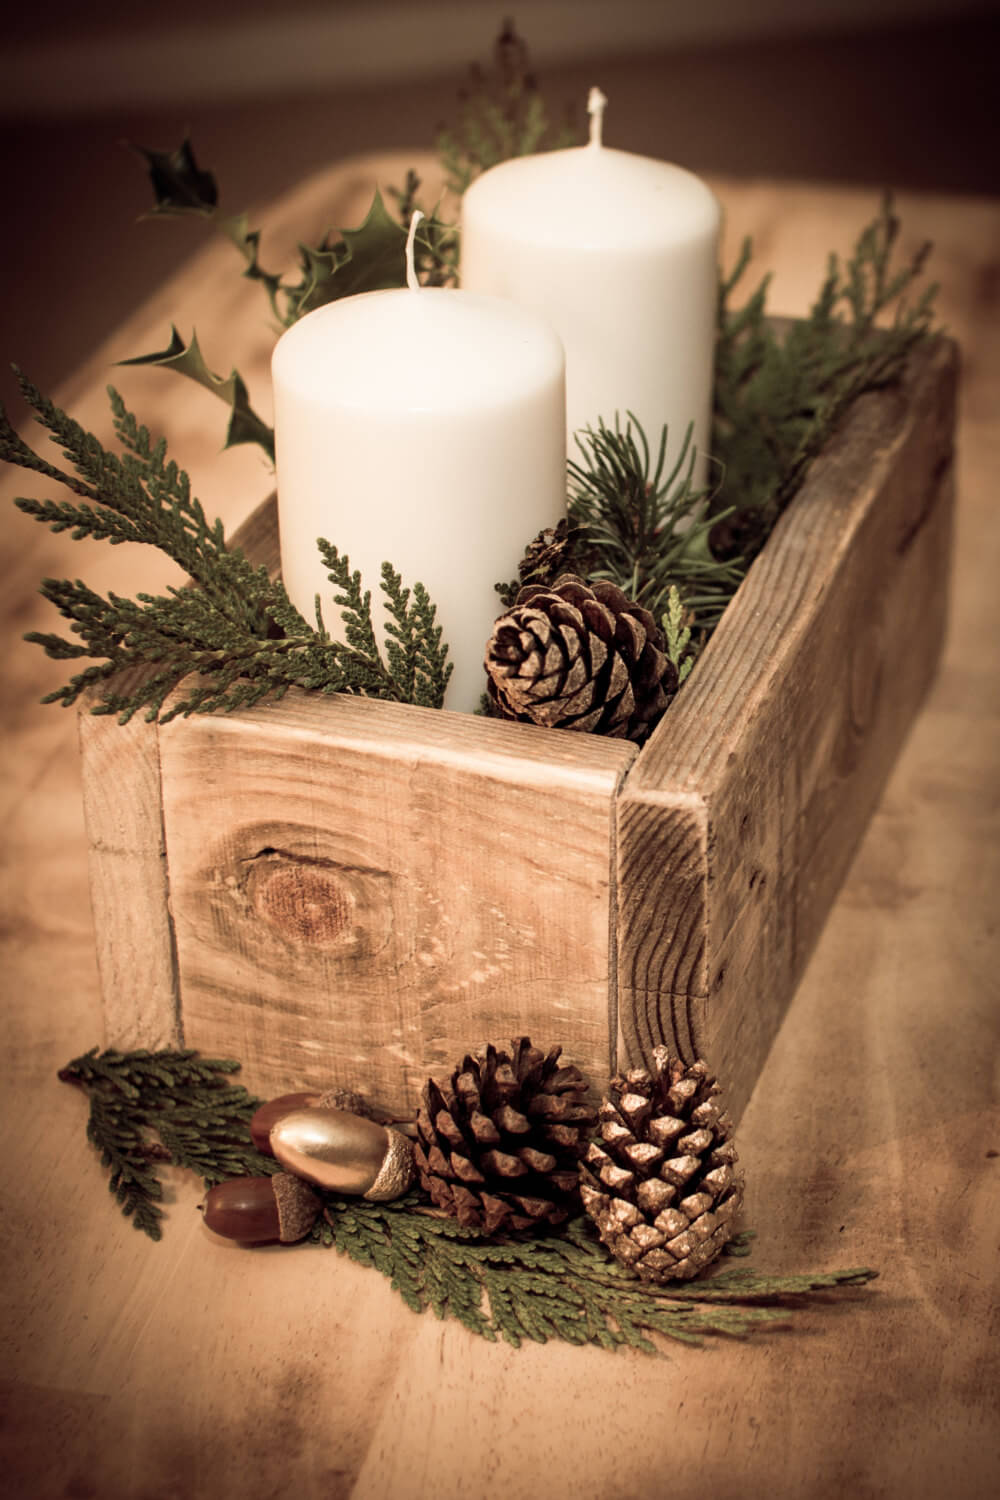 50 Best Rustic Wooden Box Centerpiece Ideas And Designs For 2021